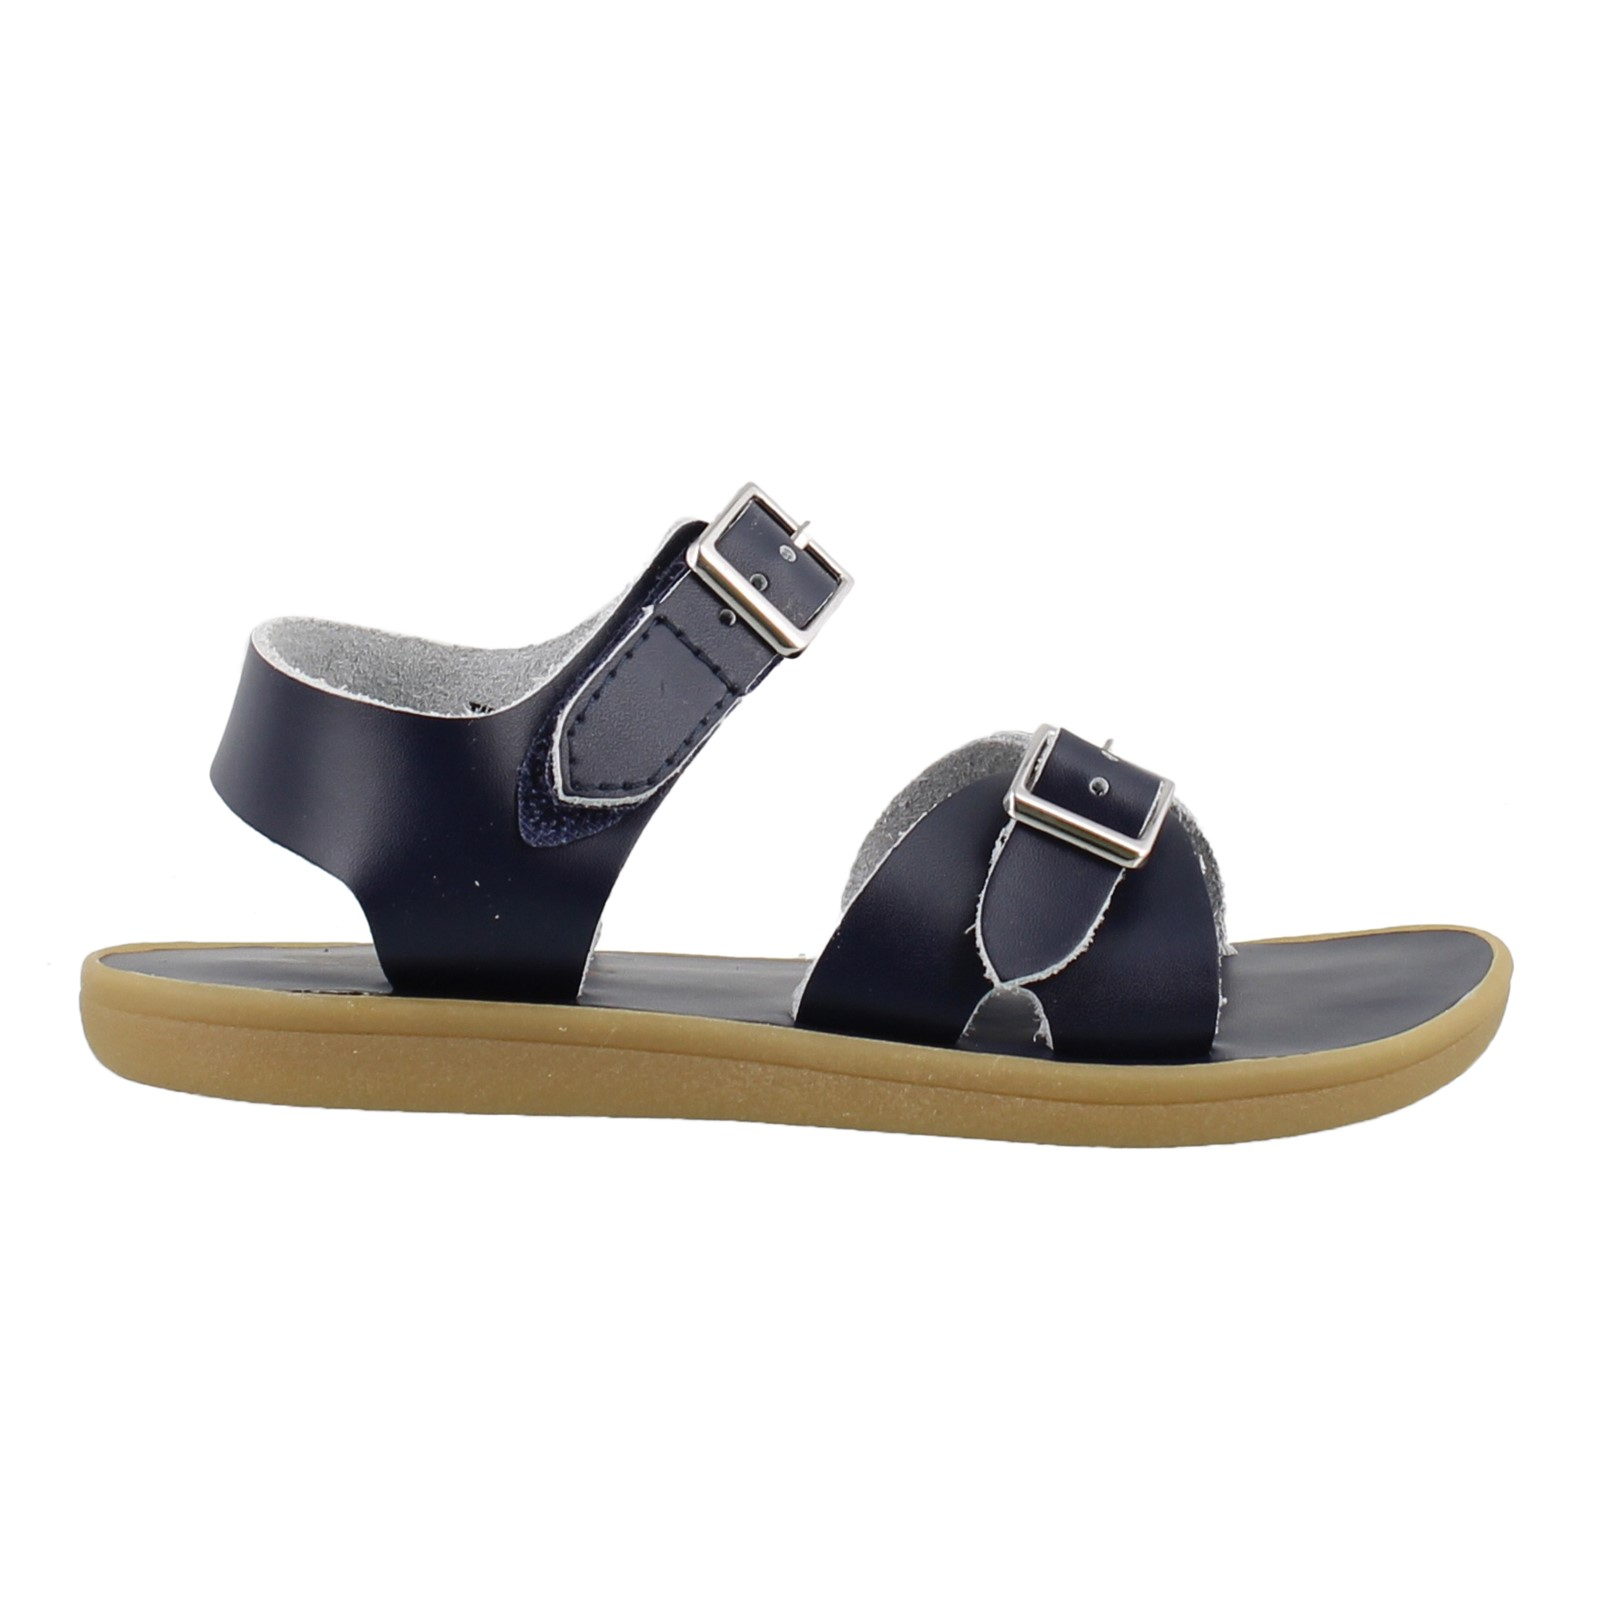 Boy's Footmates, Tide Sandal - Toddler & Little Kid